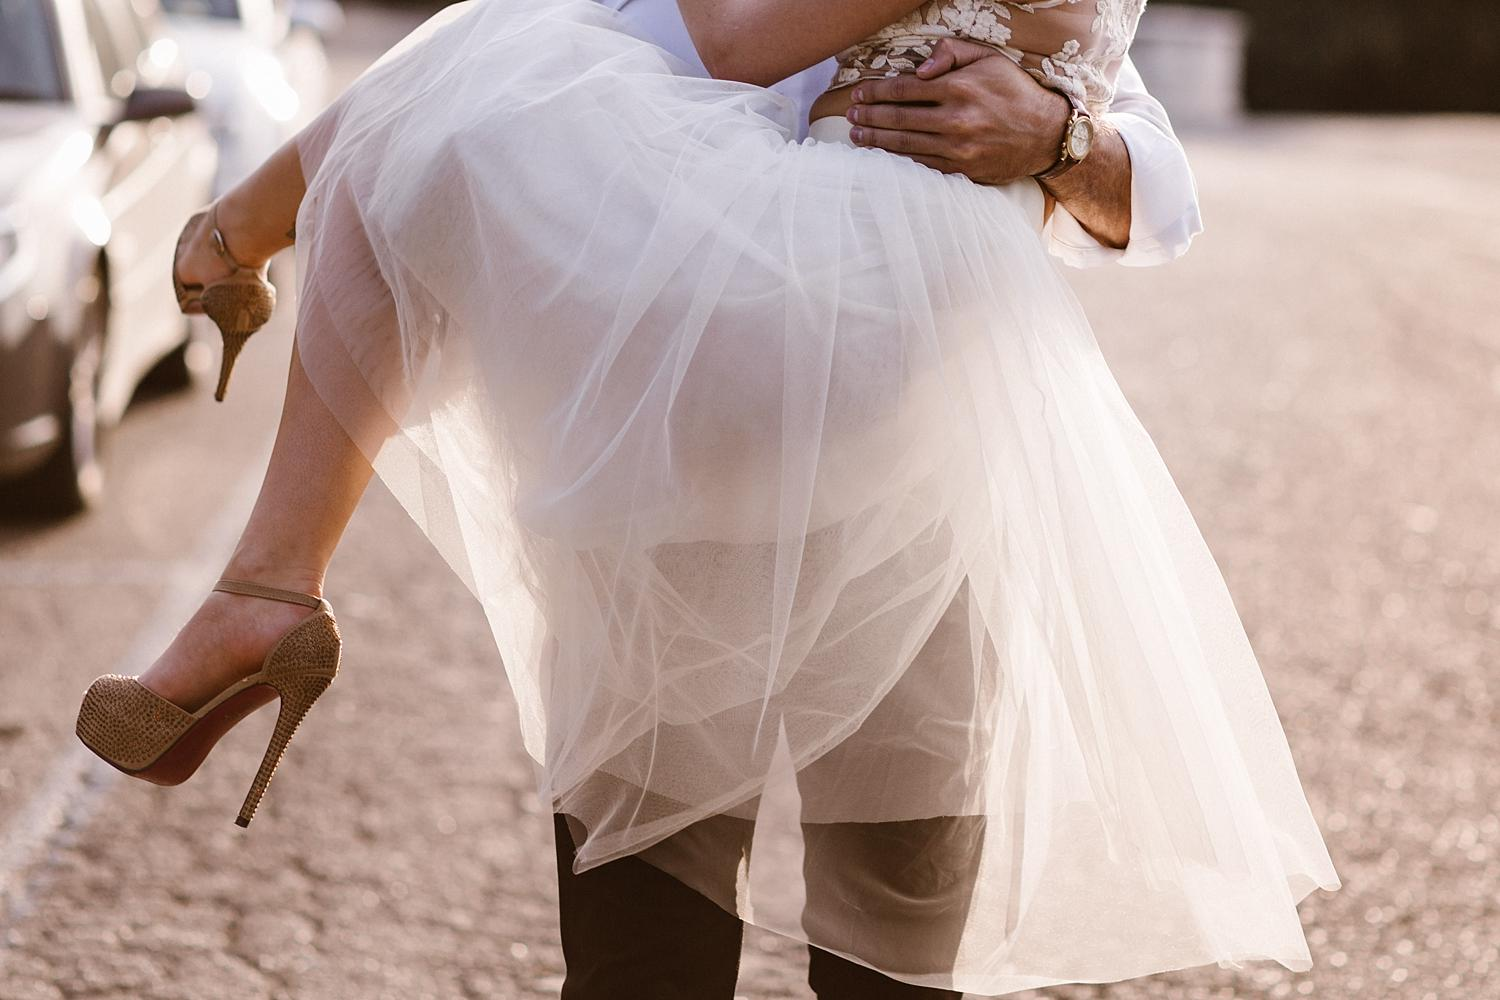 weddingphotographer florence 60 - Maddalena & Arturo - A Chic Anniversary Session in Florence